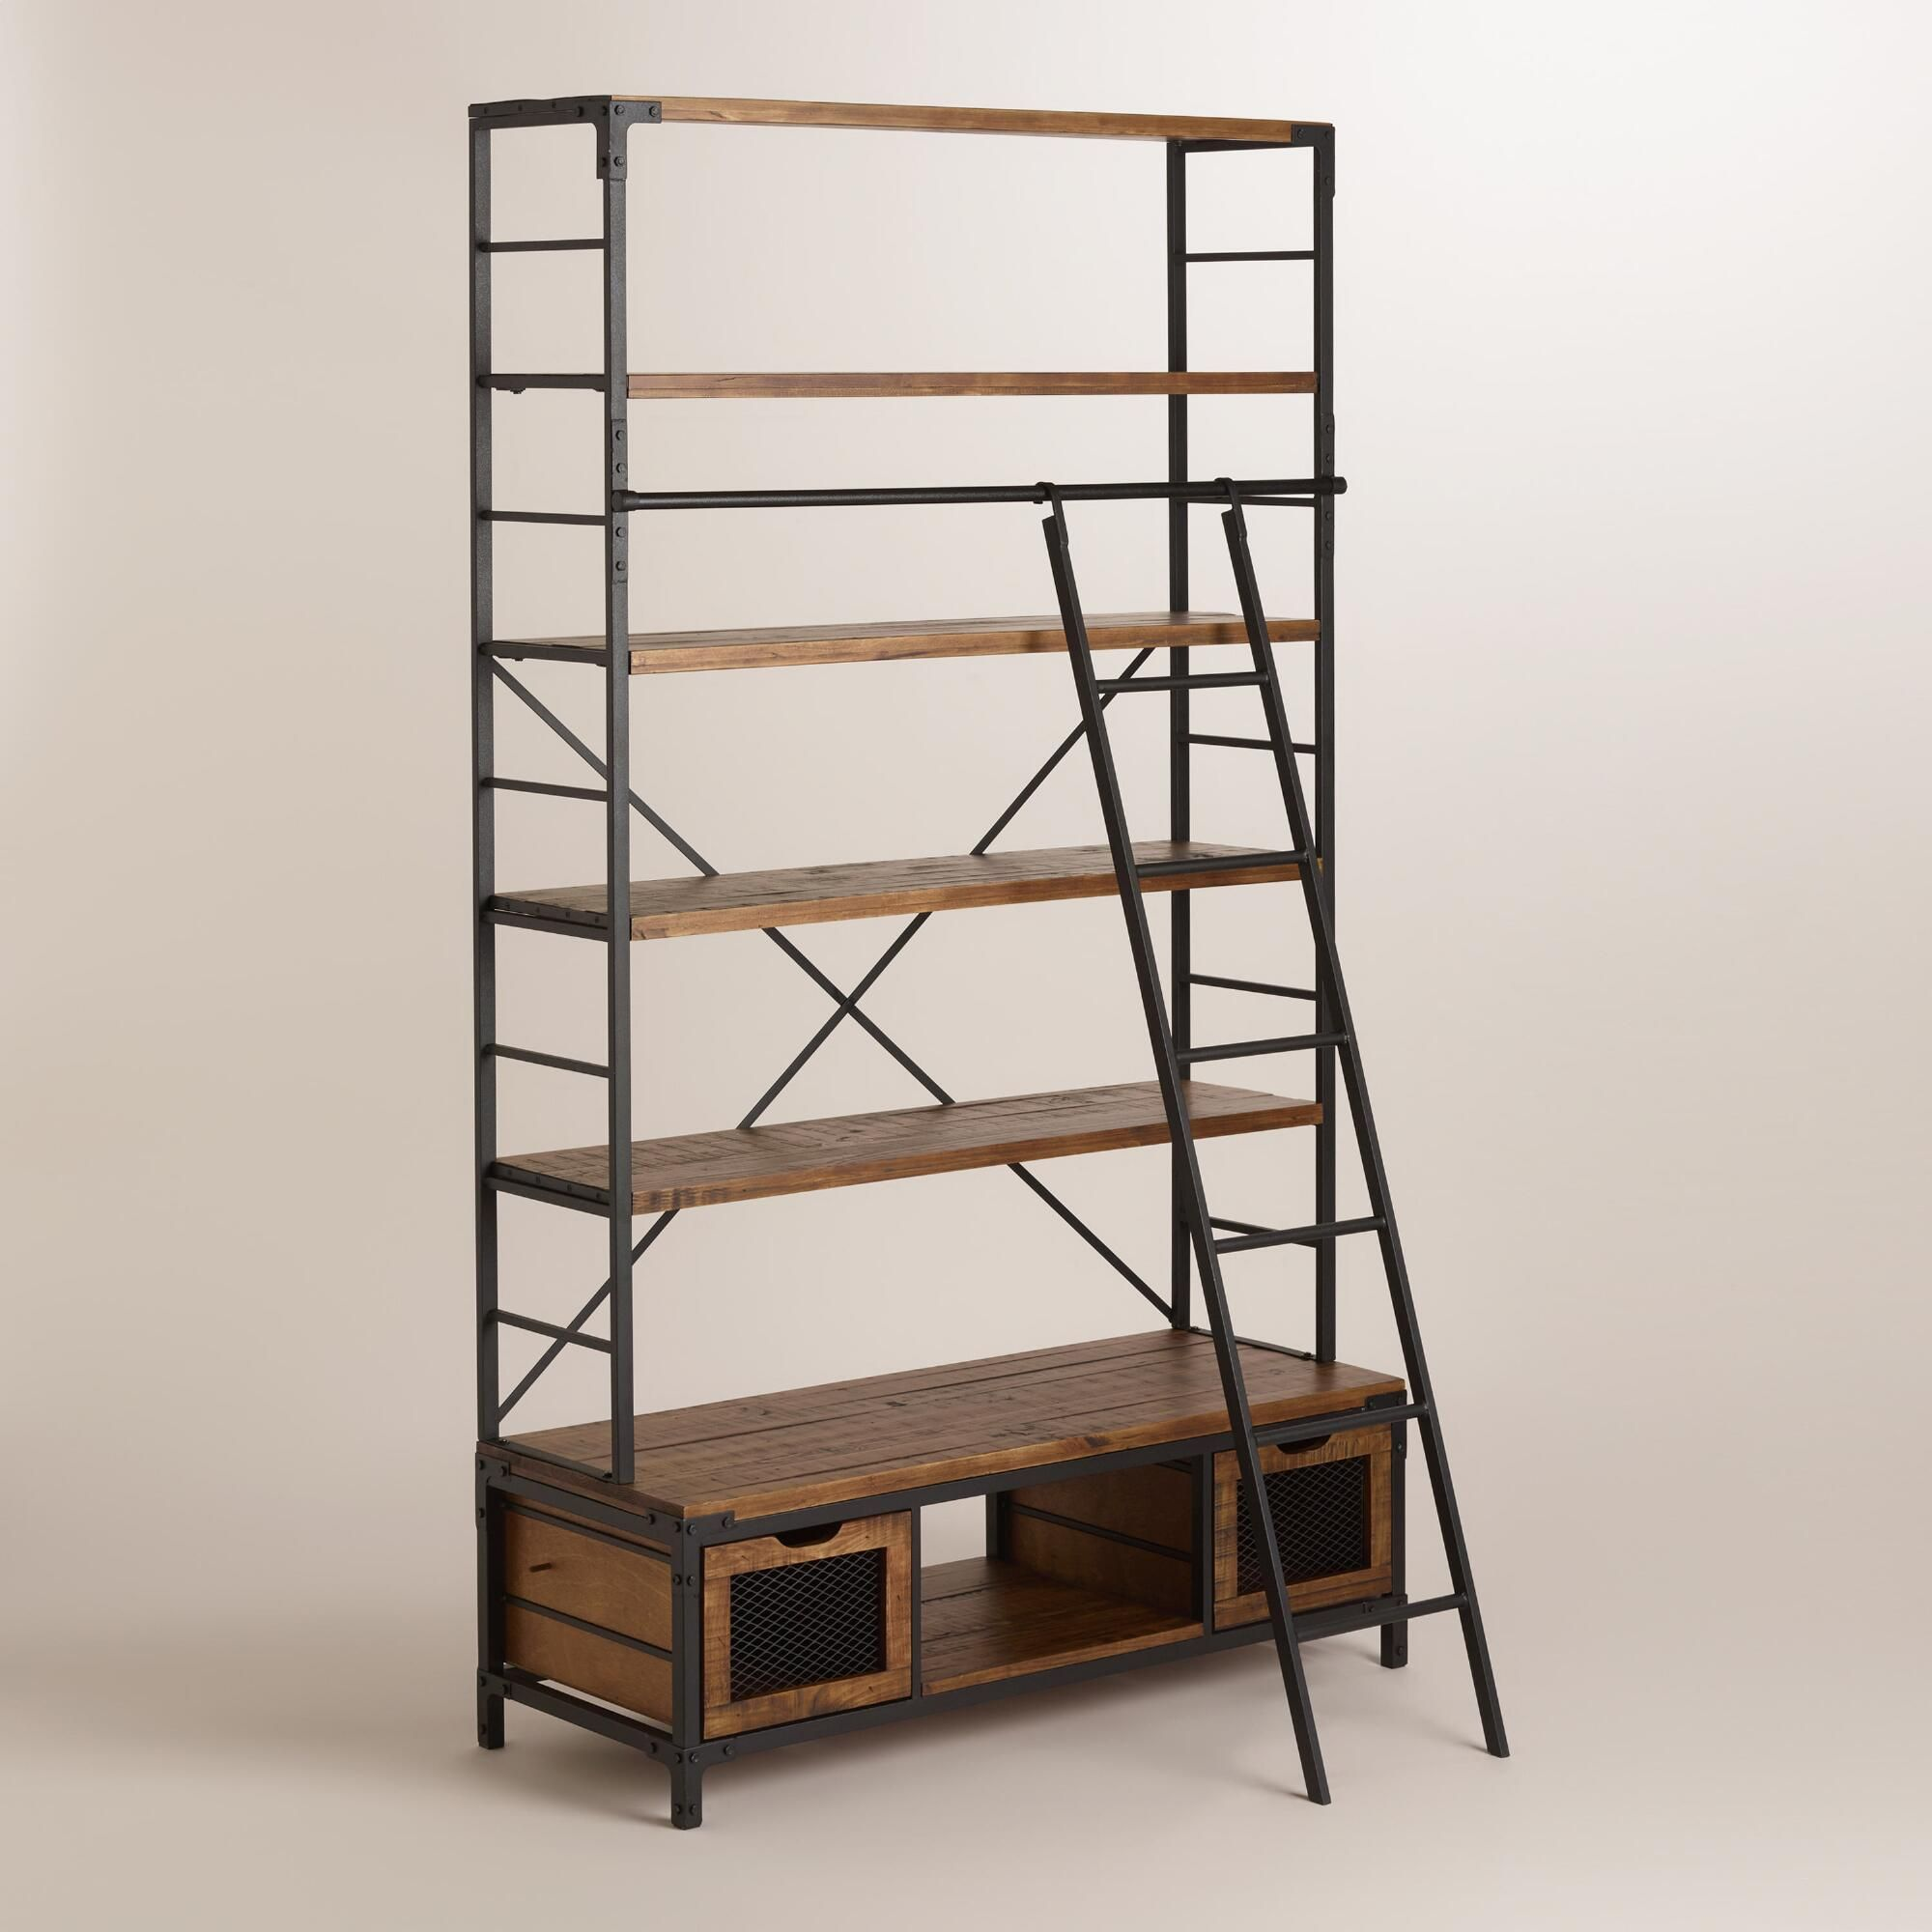 bookish appeal meets industrial edge in our distressed wood and metal bookcase with four broad. Black Bedroom Furniture Sets. Home Design Ideas